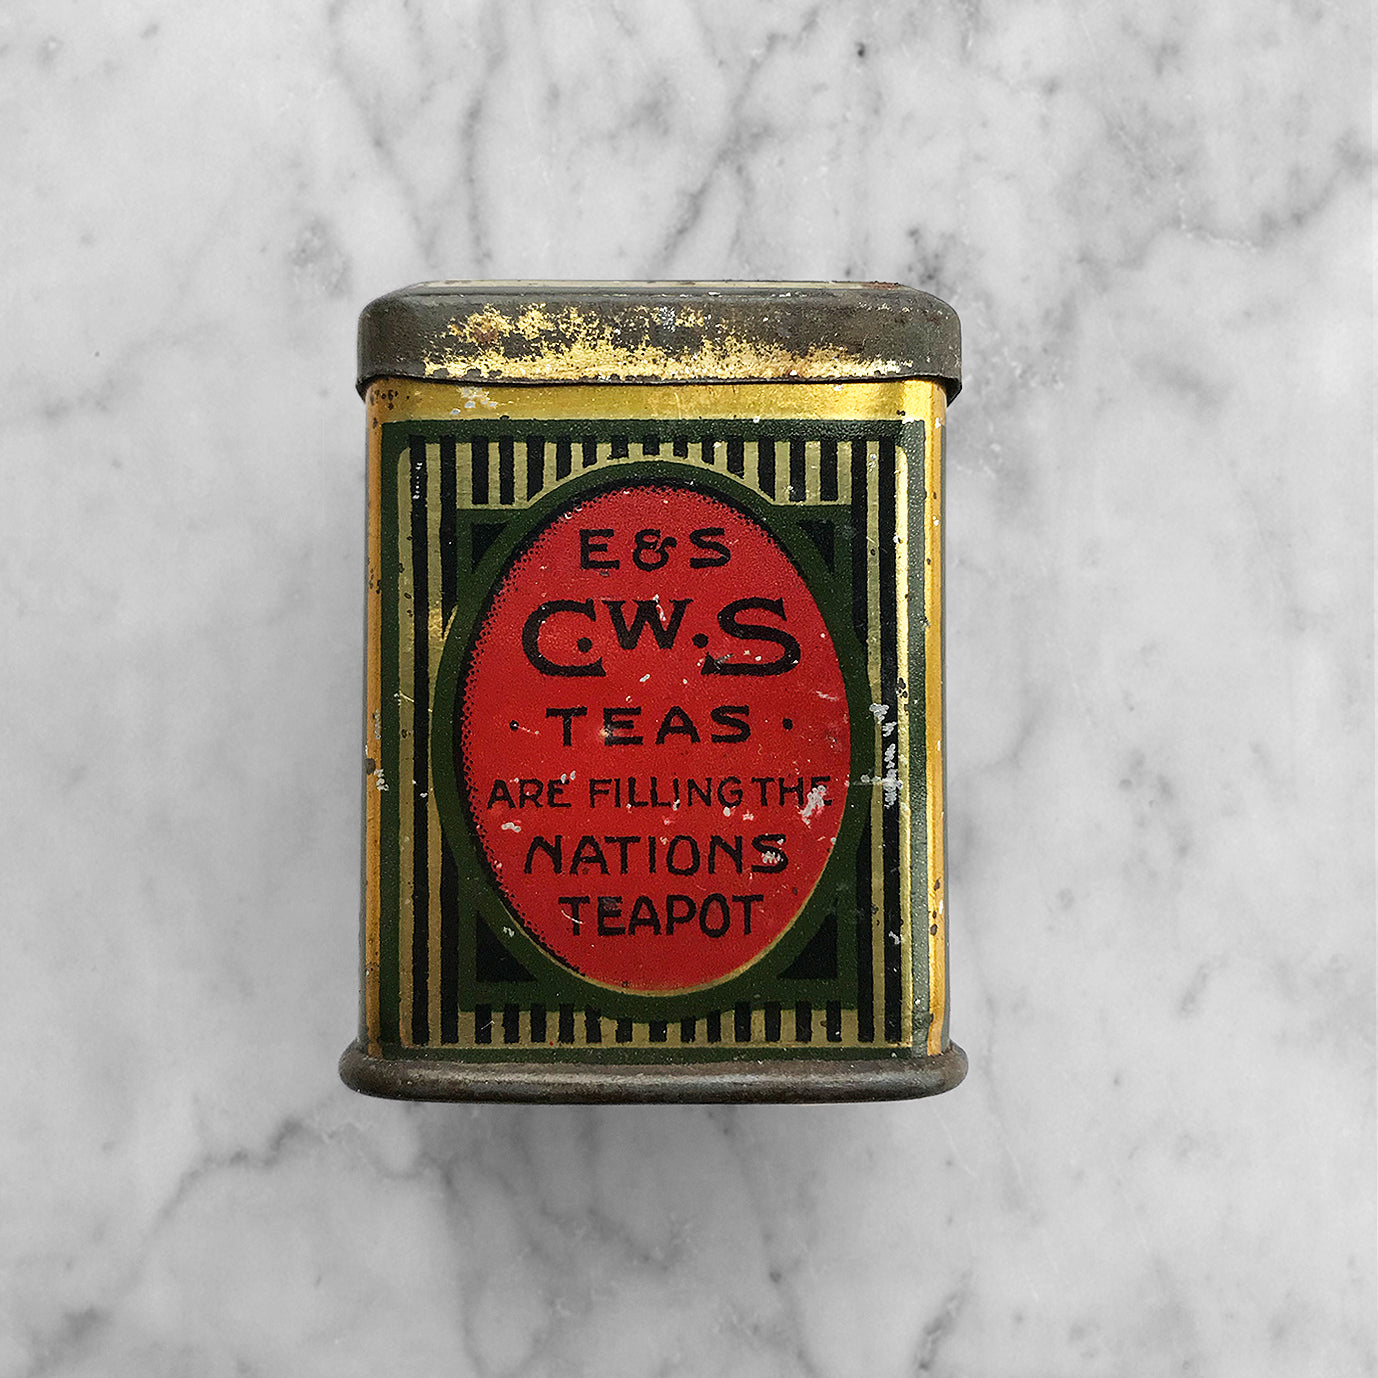 Charming little E&S CWS Tea Sample Tin. These little tins were produced in the early 20th century by the English & Scottish Joint Co-operative Wholesale Society of the United Kingdom to promote their fine teas - SHOP NOW - www.intovintage.co.uk